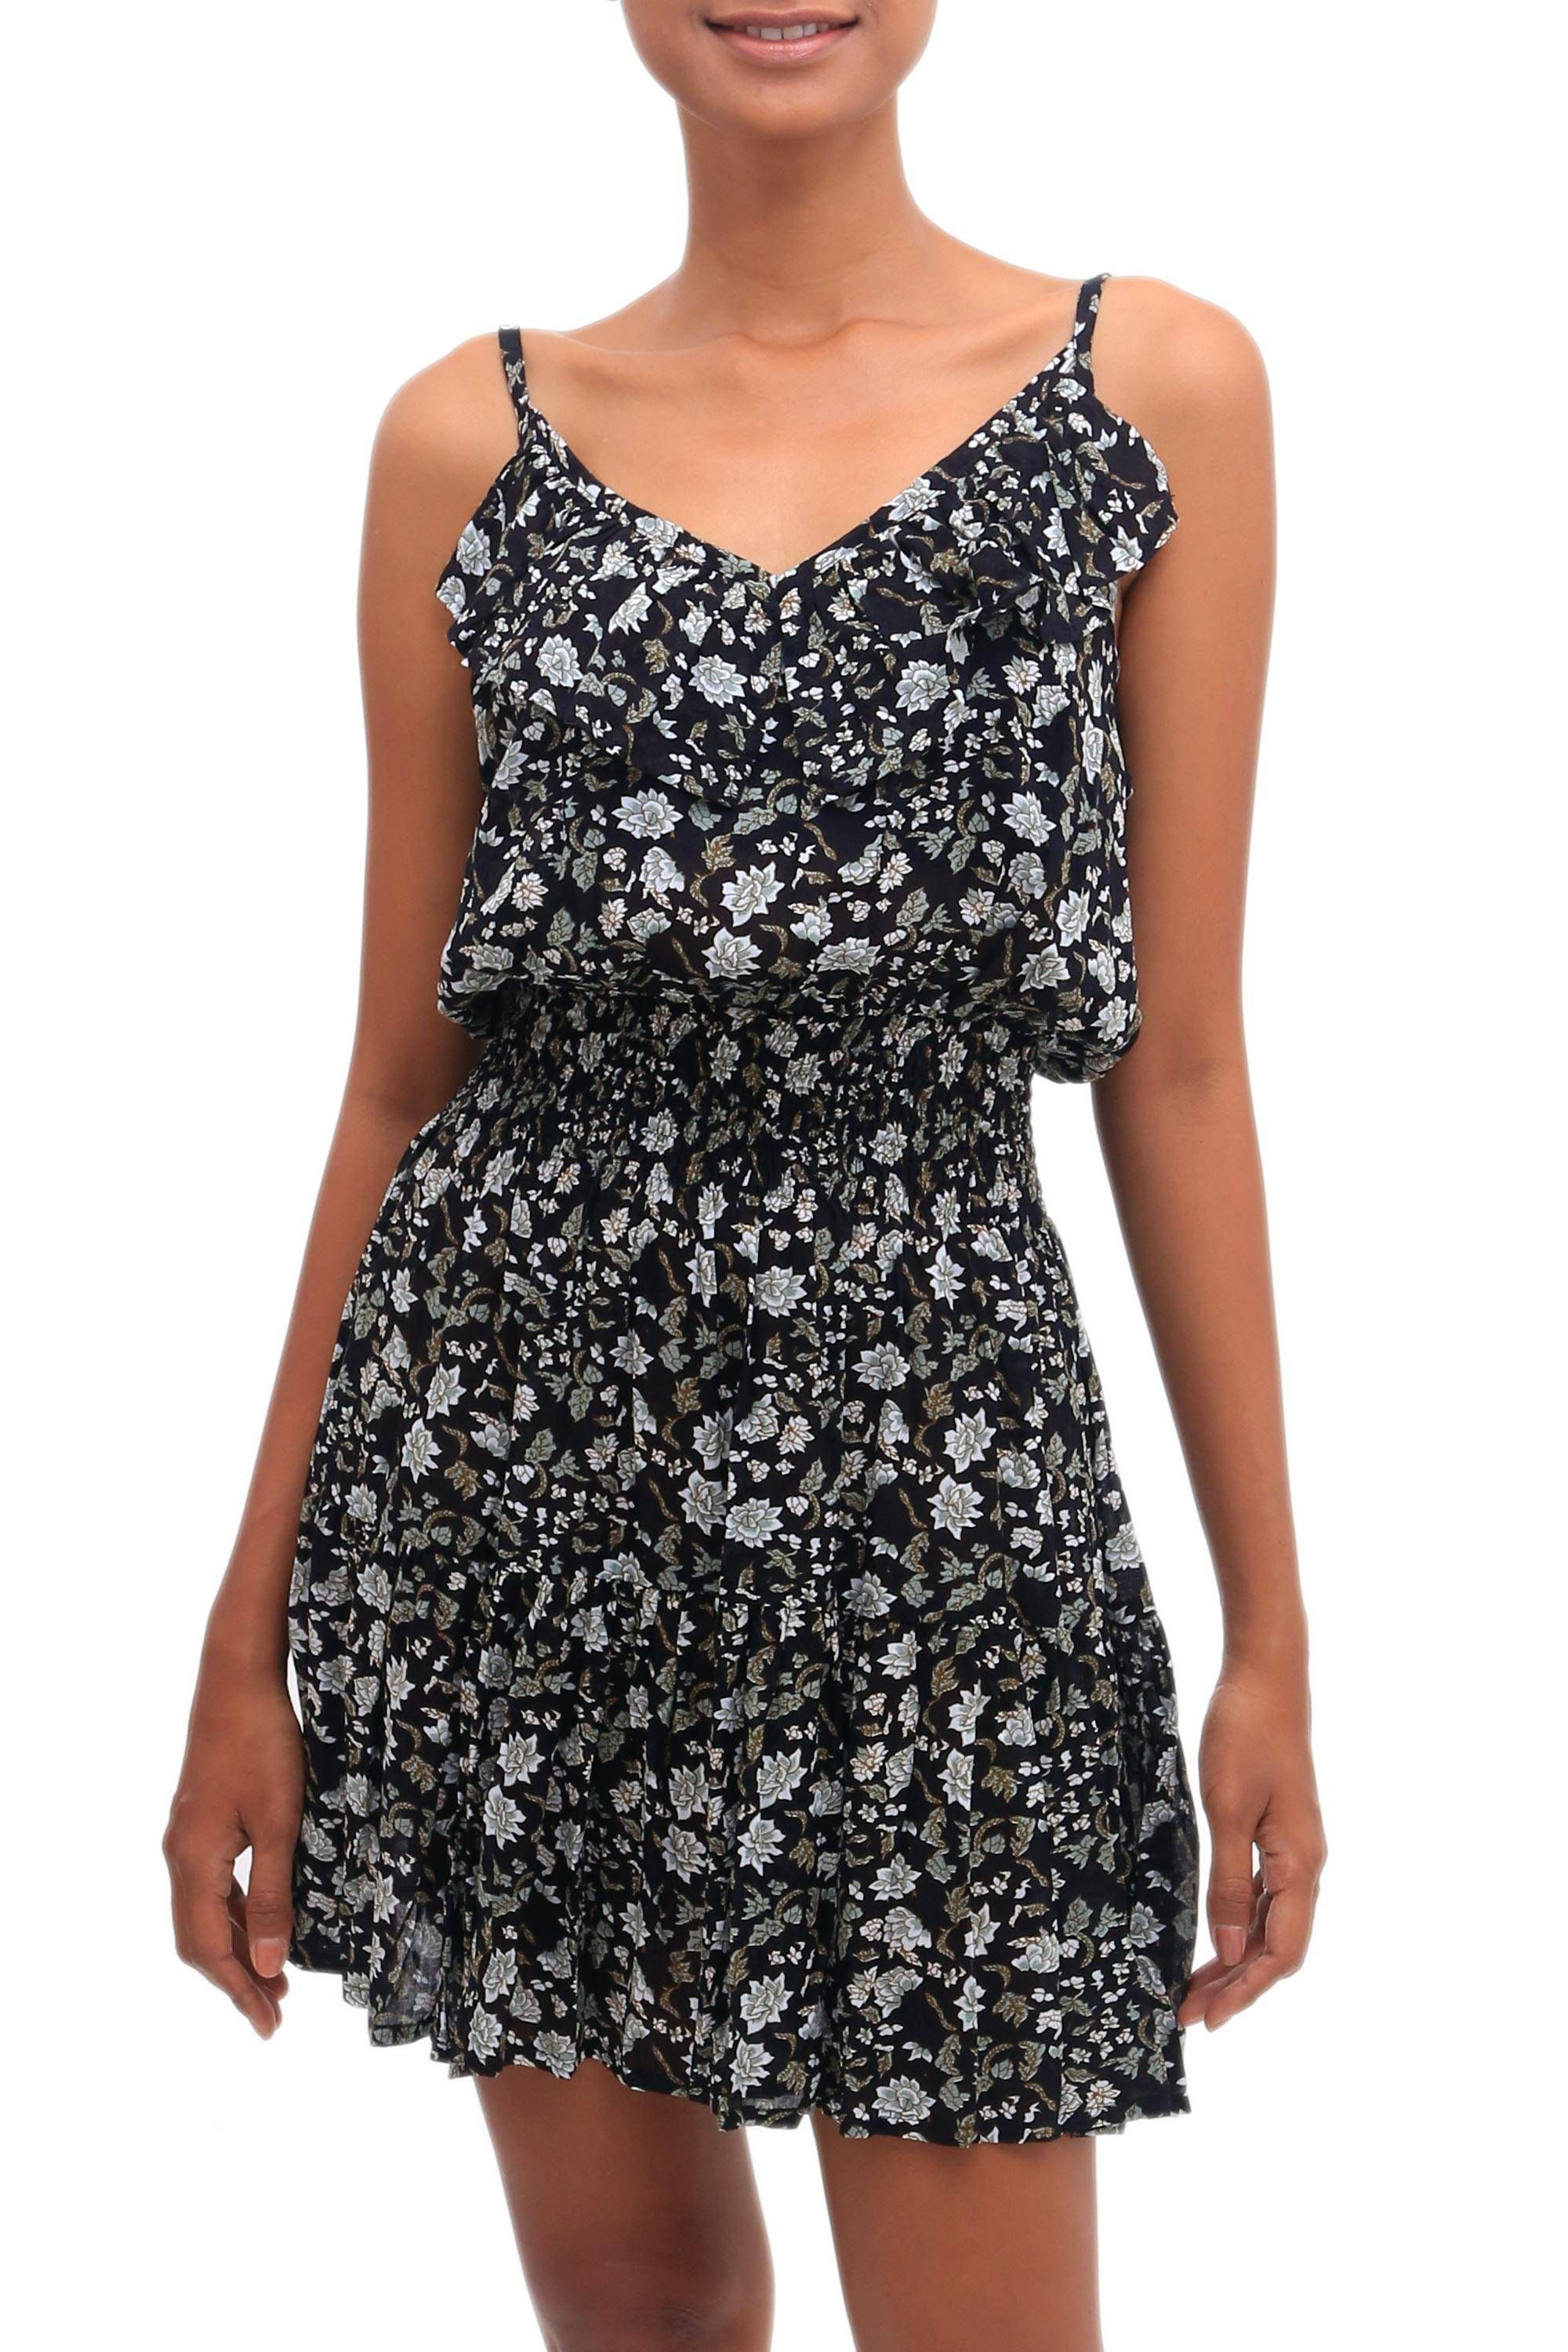 Floral Printed Rayon Short Sundress from Bali, 'Venus Flowers' #shortsundress Rayon short sundress, 'Venus Flowers' #Sponsored #short, #sponsored, #Rayon, #sundress, #Flowers #shortsundress